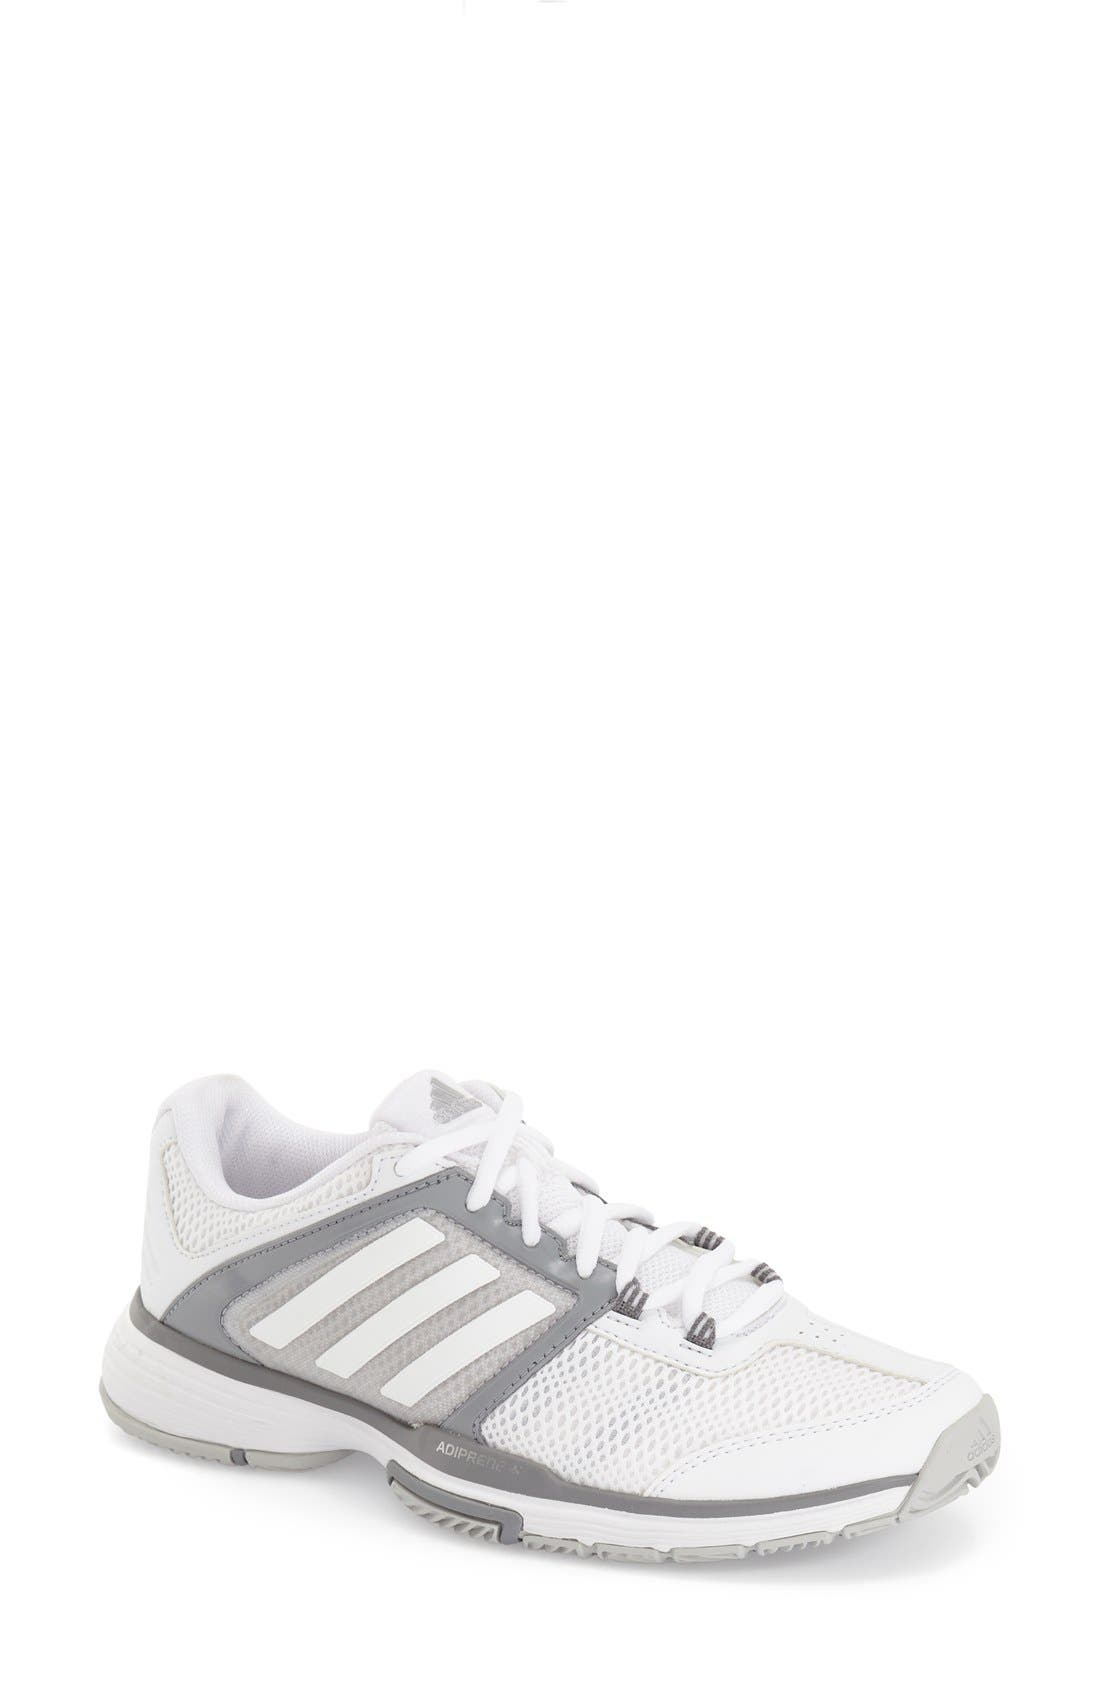 ADIDAS 'Barricade Club W' Tennis Shoe